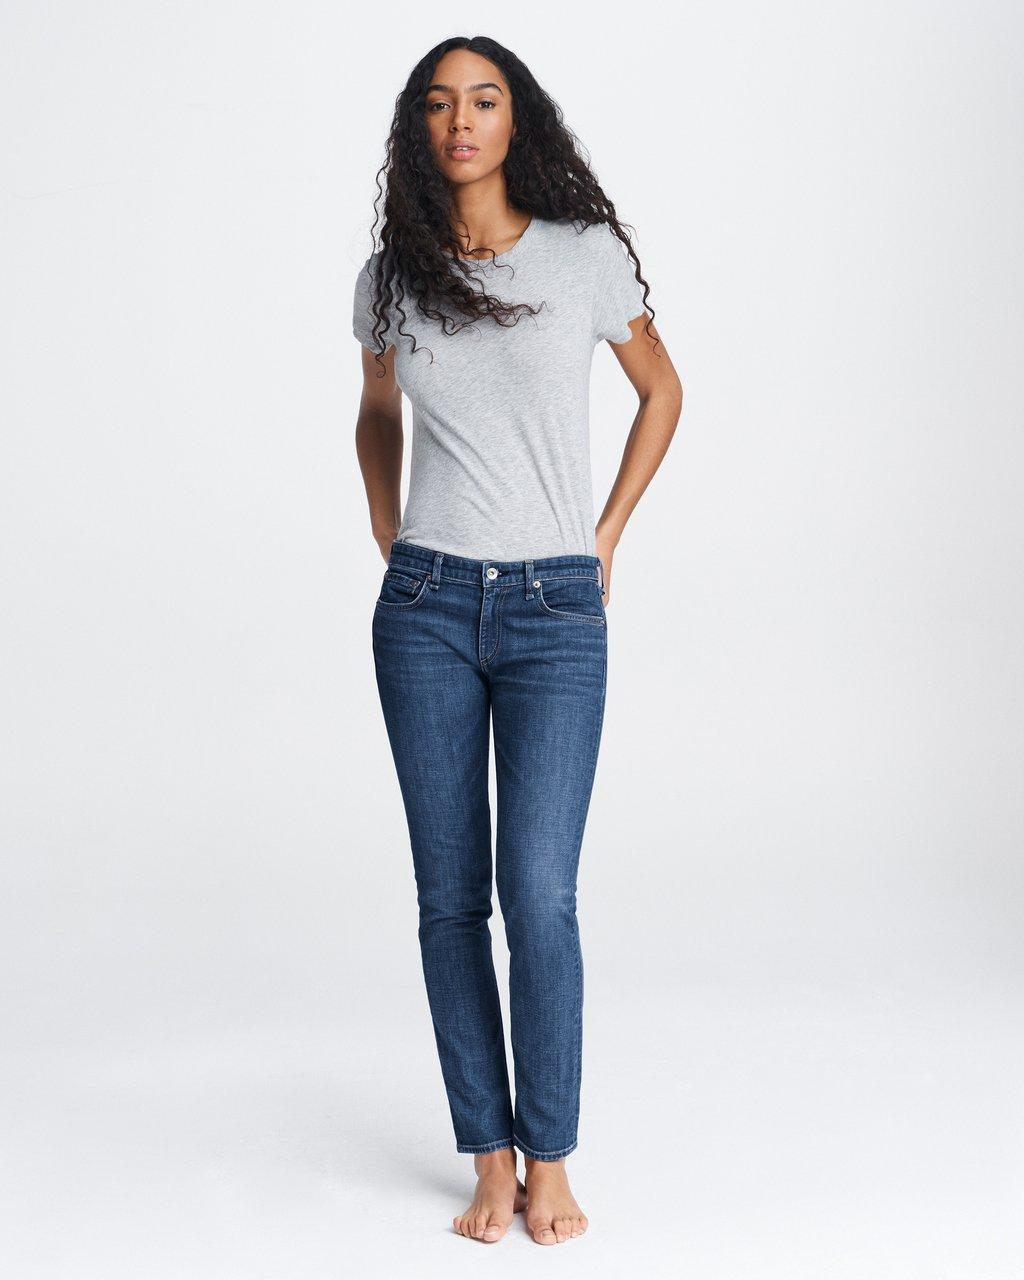 DRE LOW-RISE SLIM BOYFRIEND